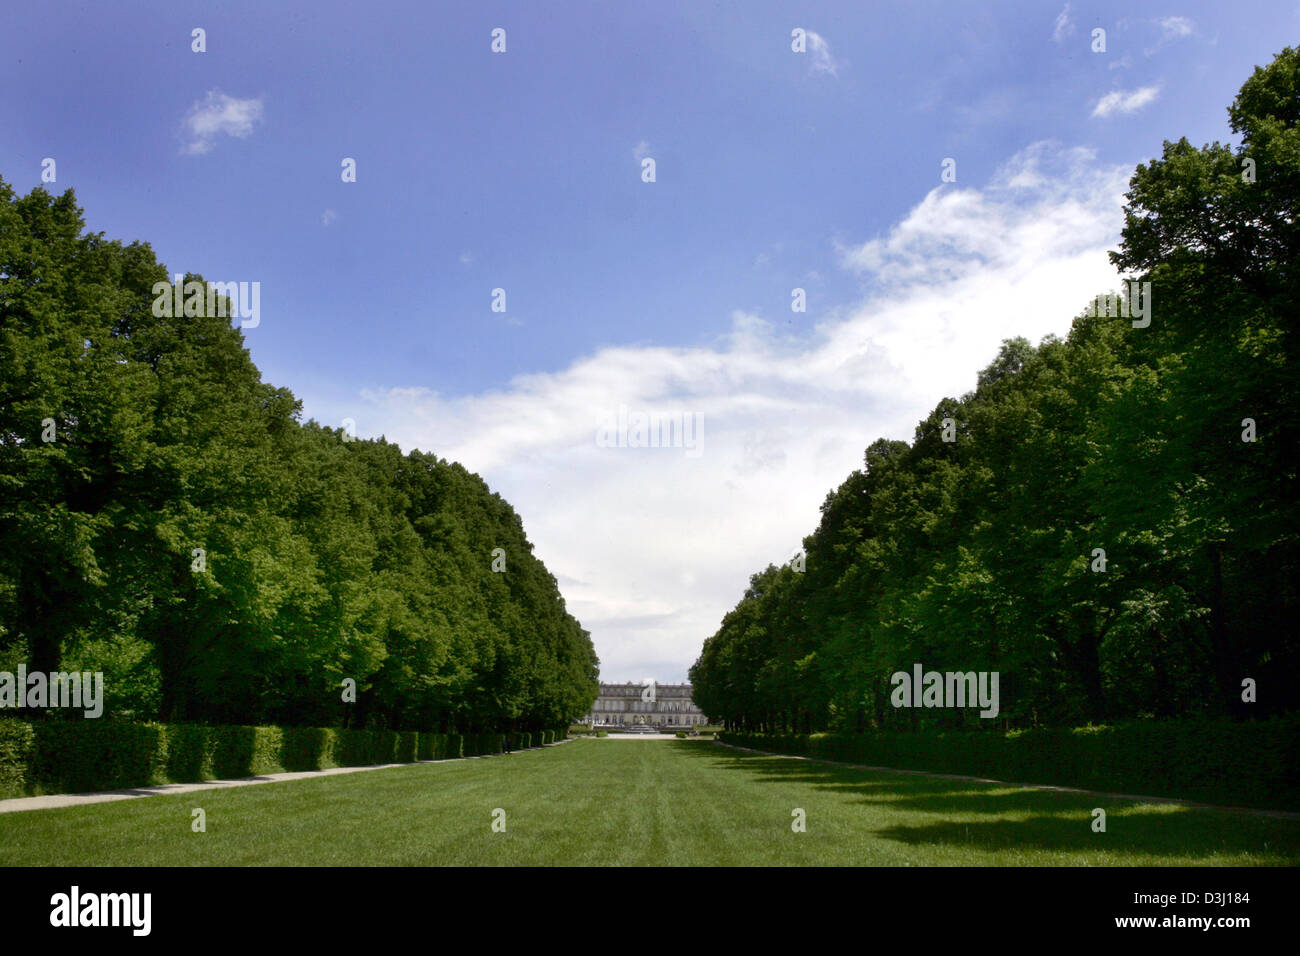 (dpa) - View on the castle Herrenchiemsee on the Herreninsel island at the Chiemsee lake, Germany, 9 June 2005. Stock Photo